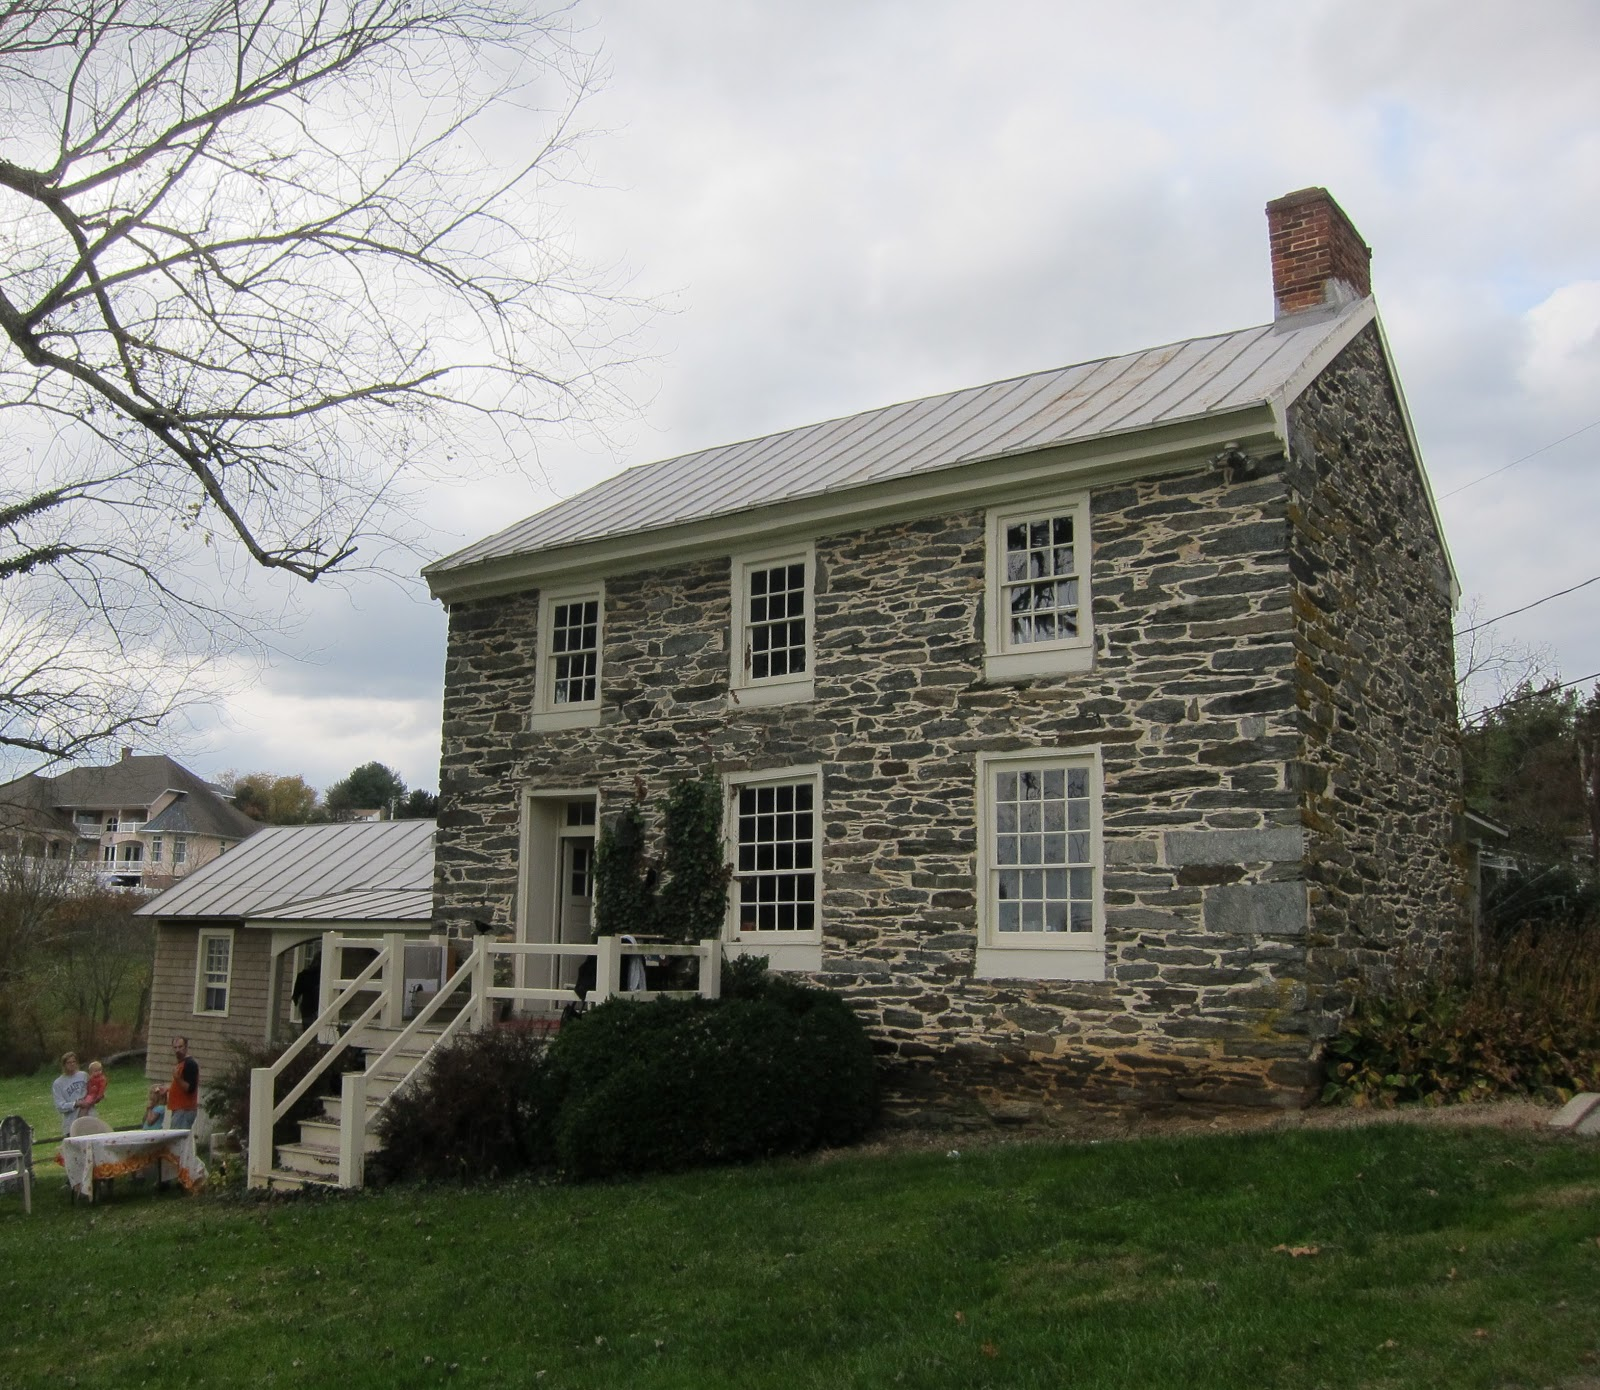 Whistling prairie stone house at cold saturday Strona house